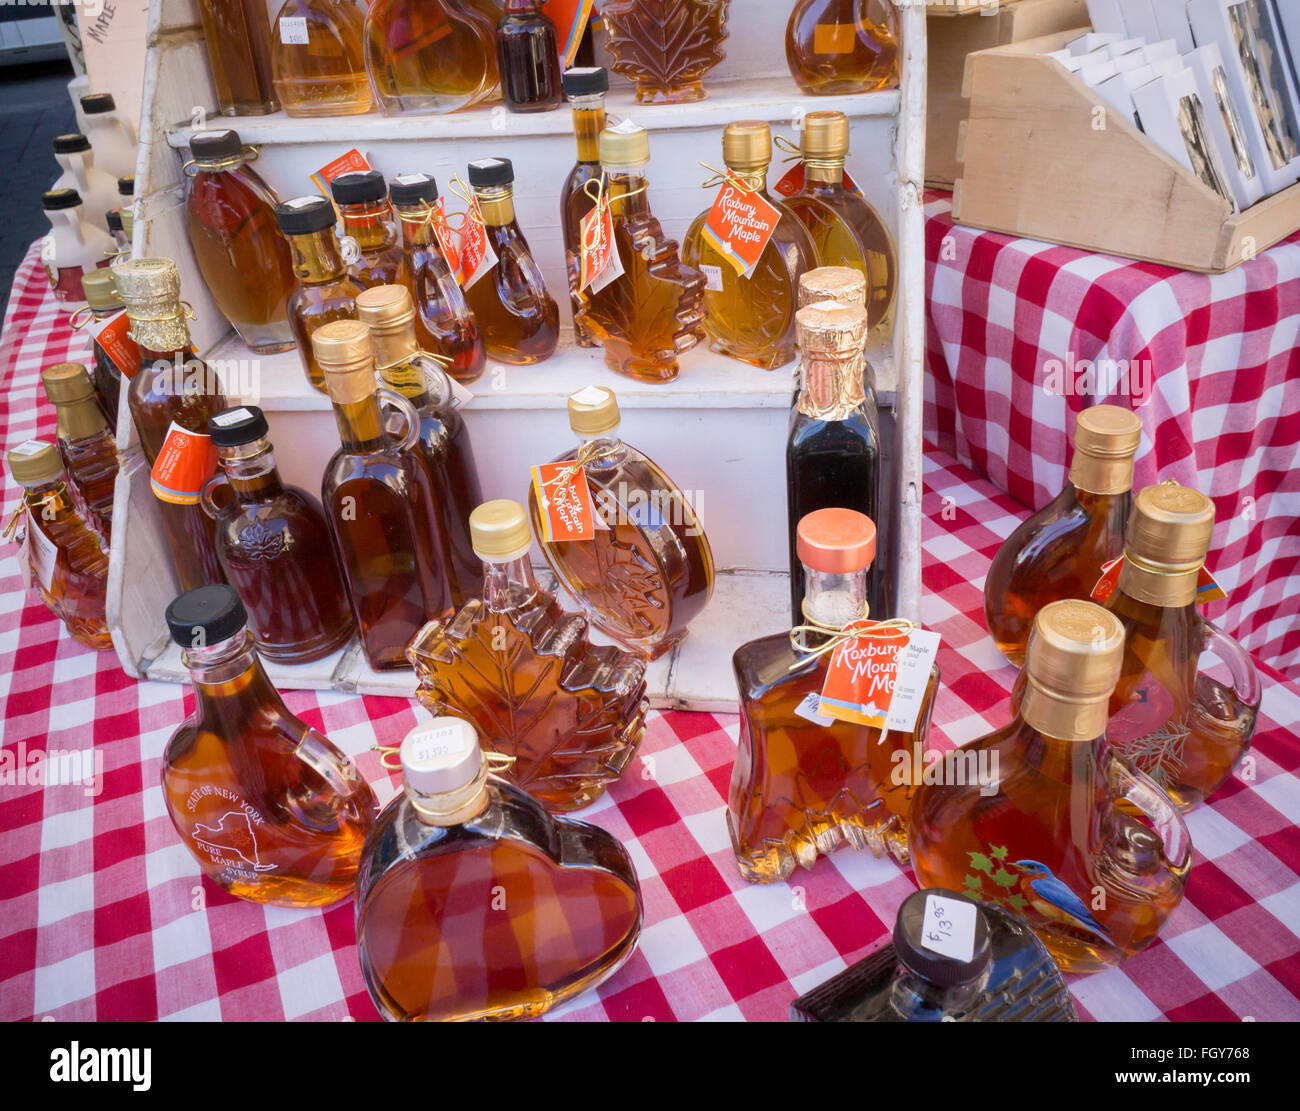 062b1278f83 Decorative bottles of genuine New York State maple syrup for sale in the  Union Square Greenmarket